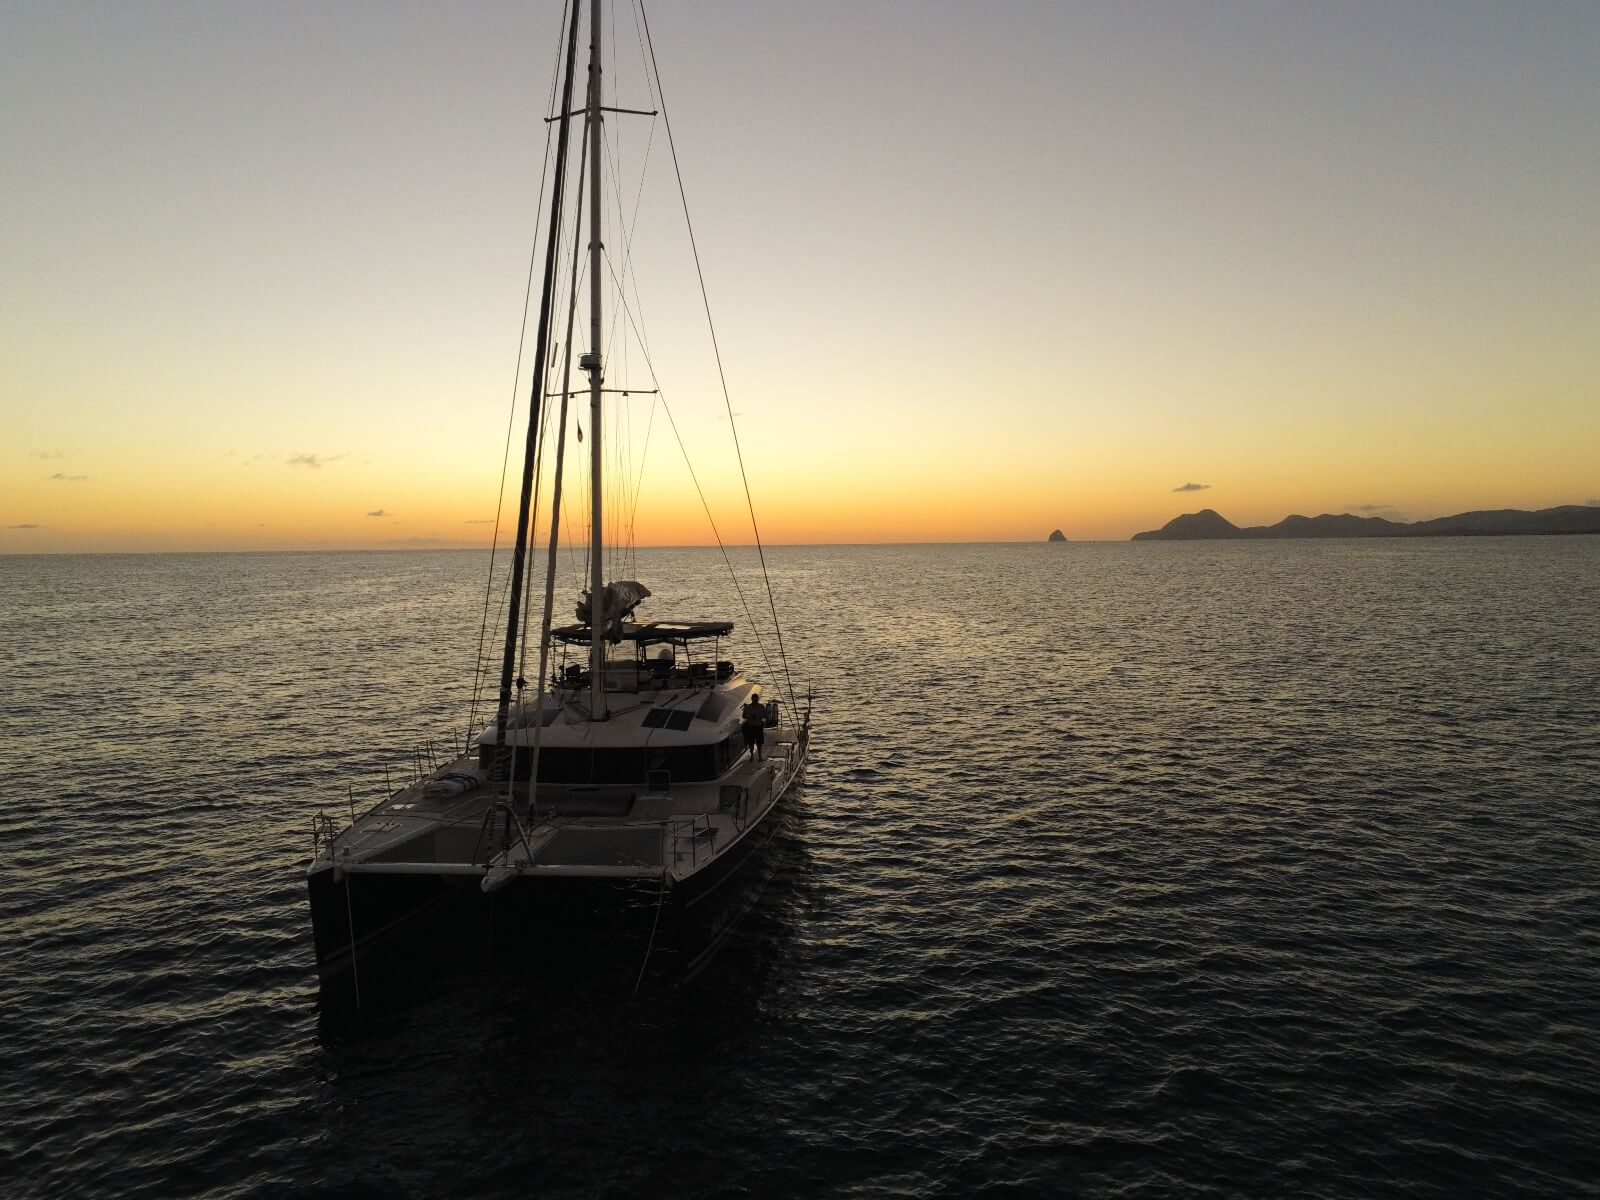 Get on the same boat with nomads and remote workers. Literally!